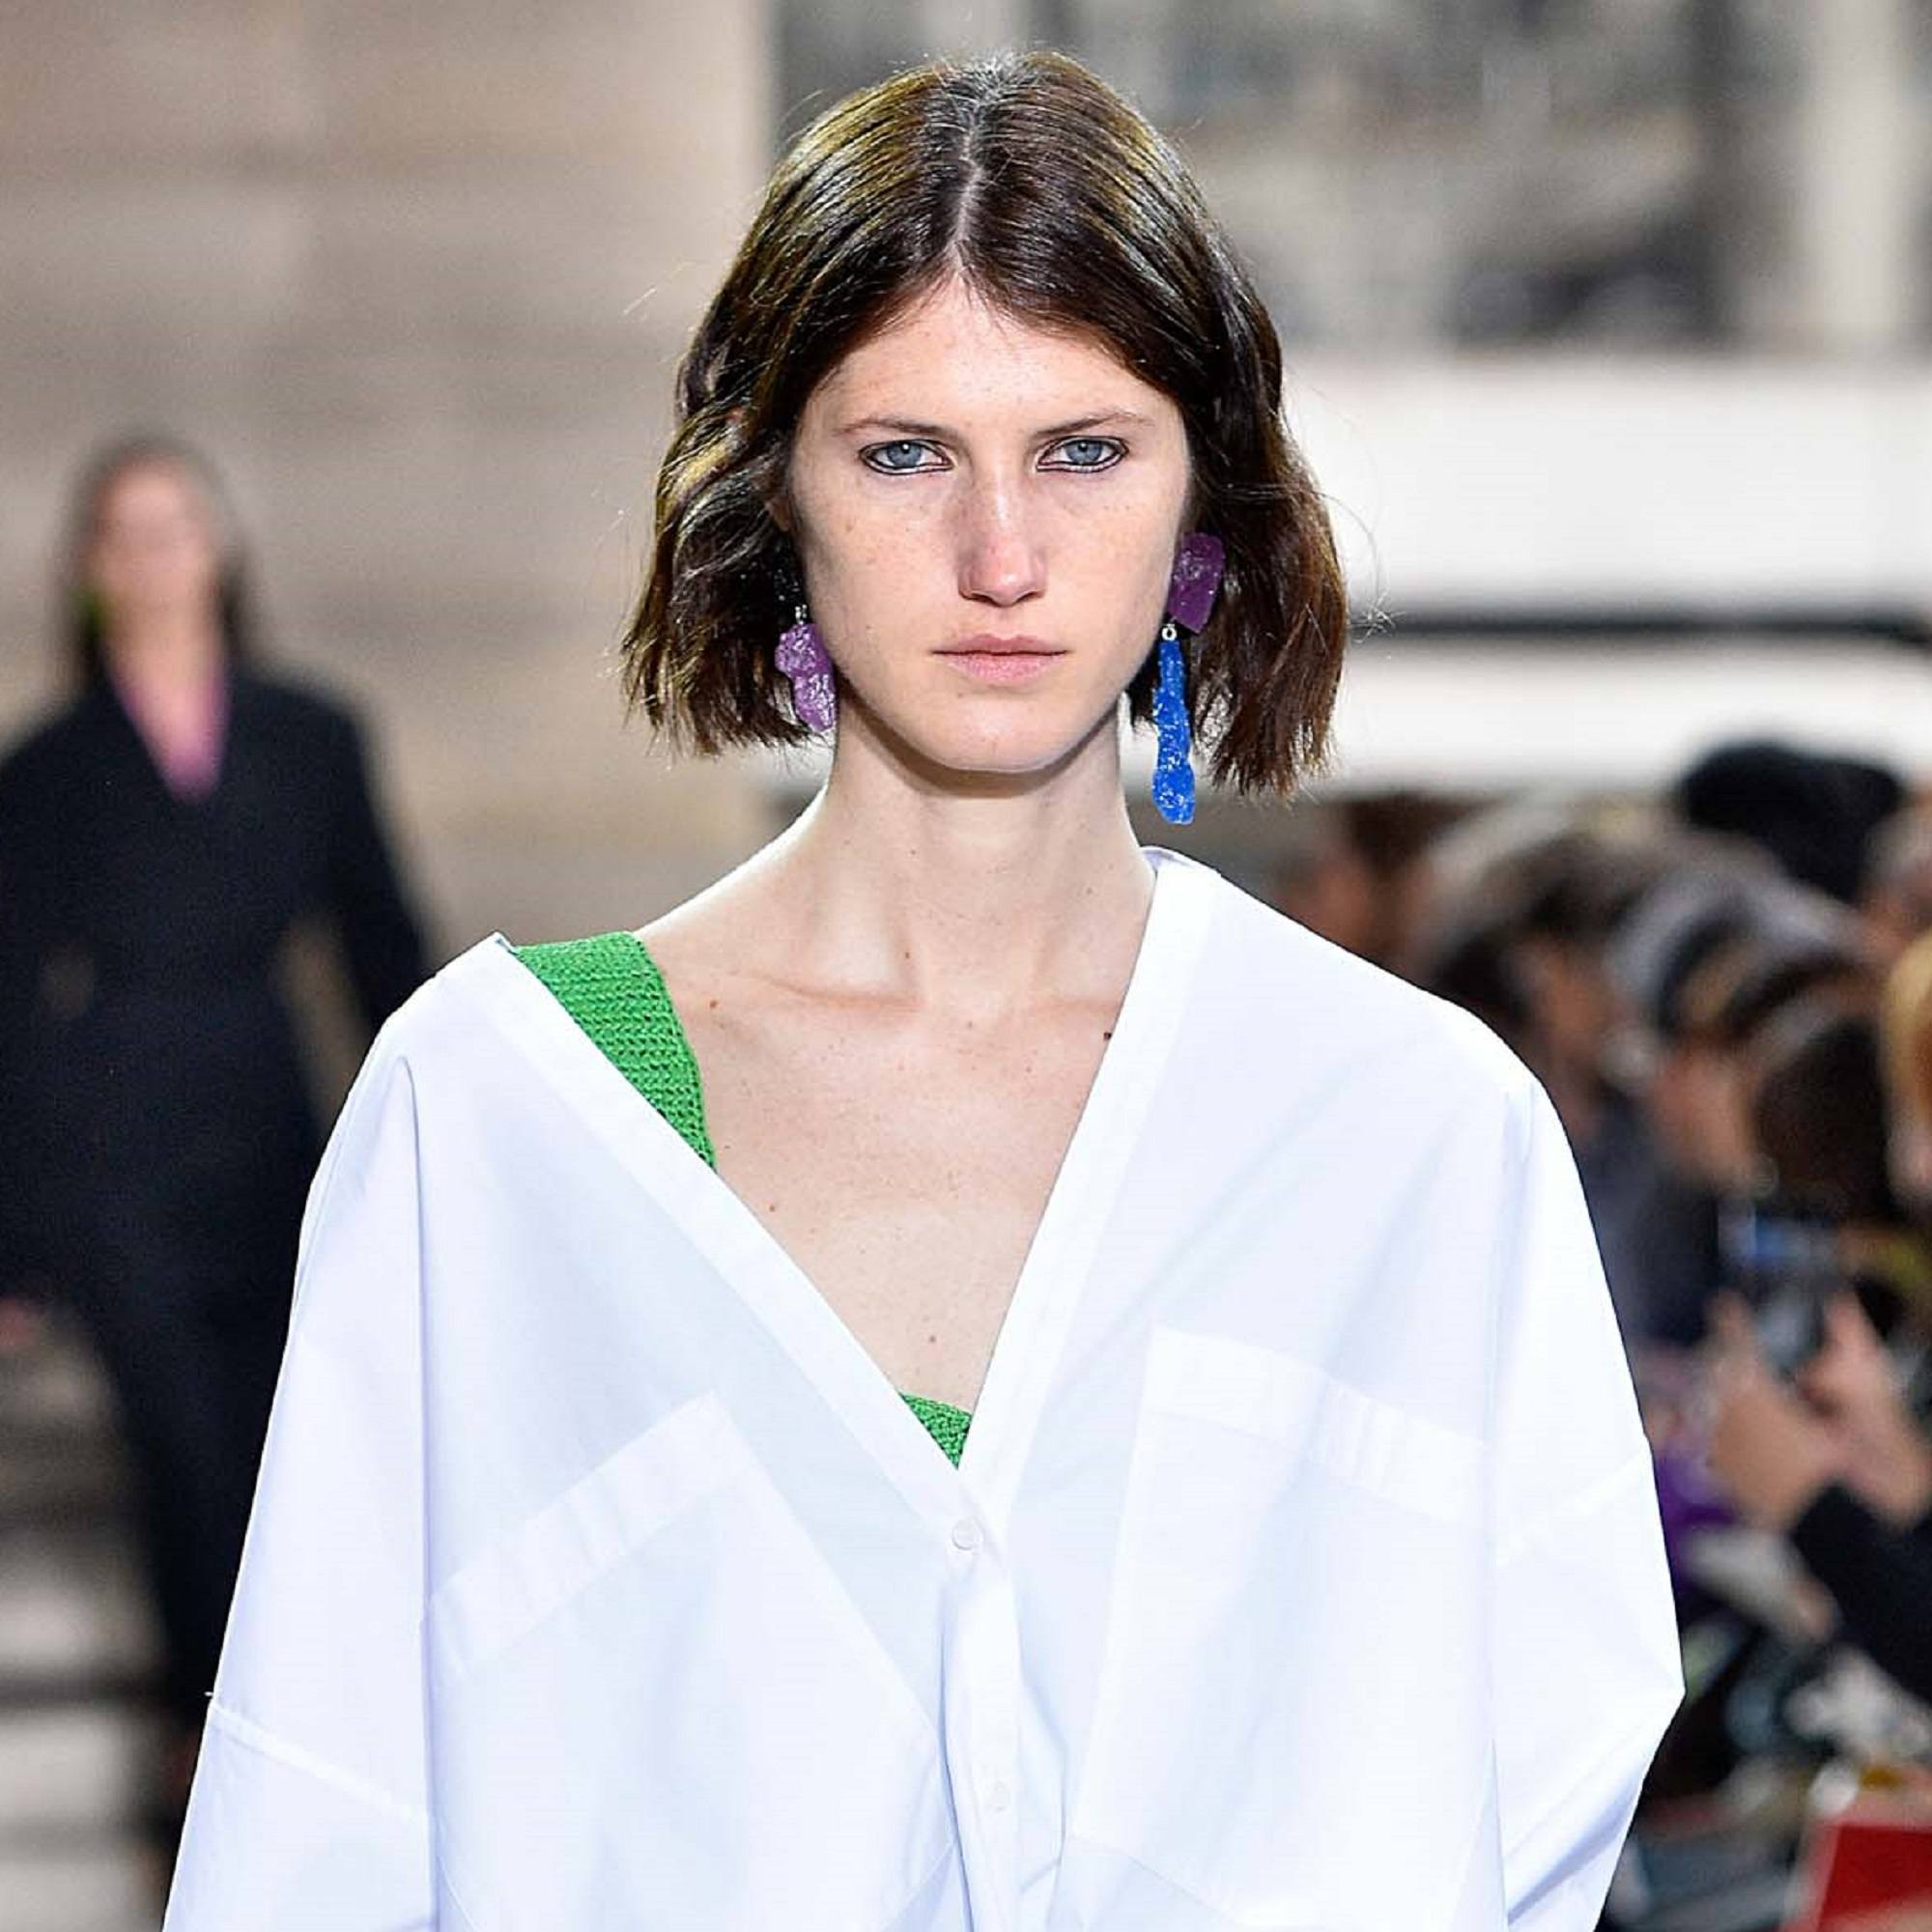 Hair trends to try in 2019: Woman with dark brown bob wearing a white blouse on the runway